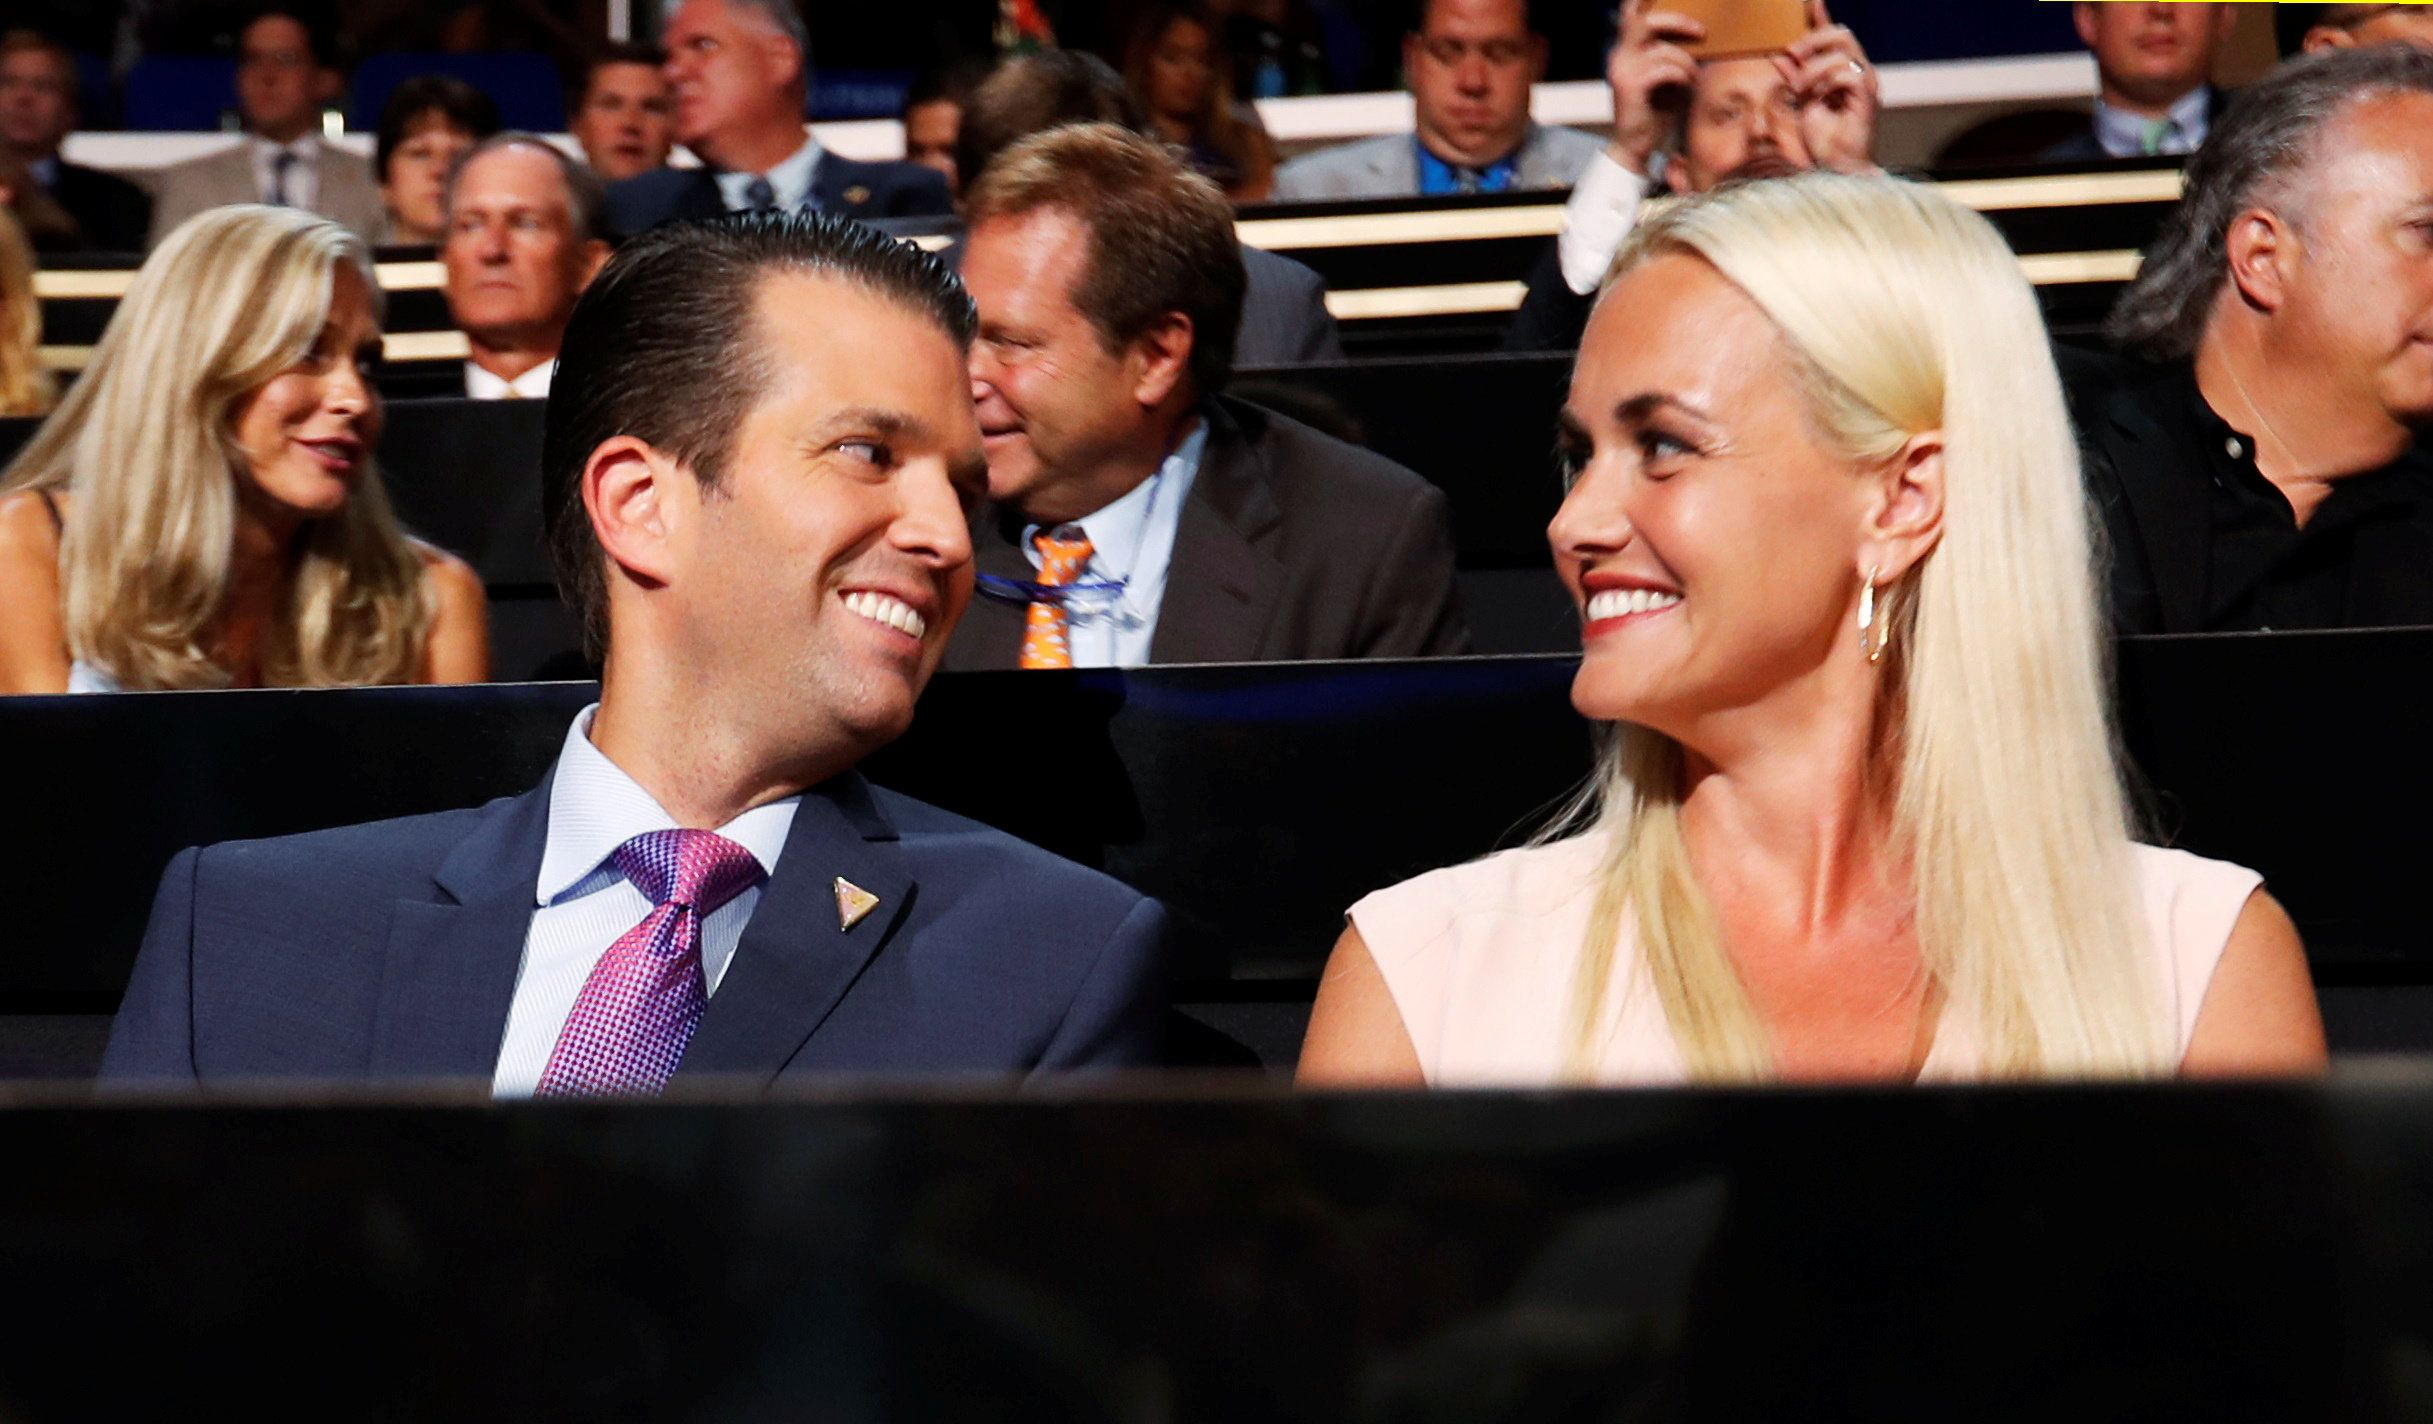 FILE PHOTO: Donald Trump Jr. and his wife Vanessa attend the second day session at the Republican National Convention in Cleveland, Ohio, U.S. July 19, 2016. REUTERS/Jonathan Ernst/File photo